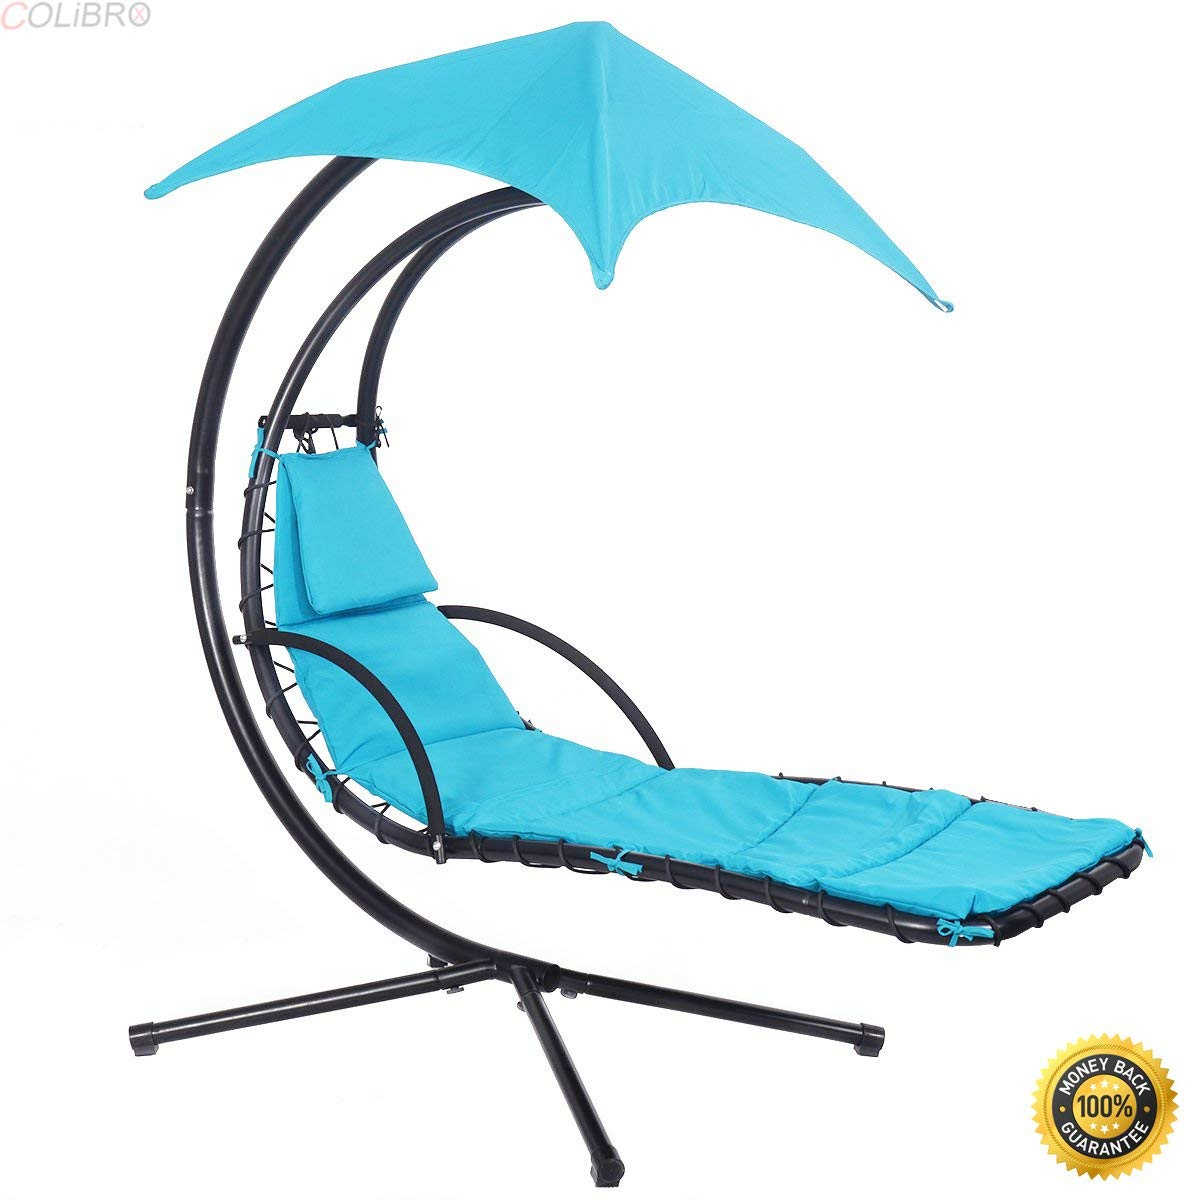 Cheap Porch Swing Hammock, Find Porch Swing Hammock Deals On With Patio Loveseat Canopy Hammock Porch Swings With Stand (Image 10 of 25)